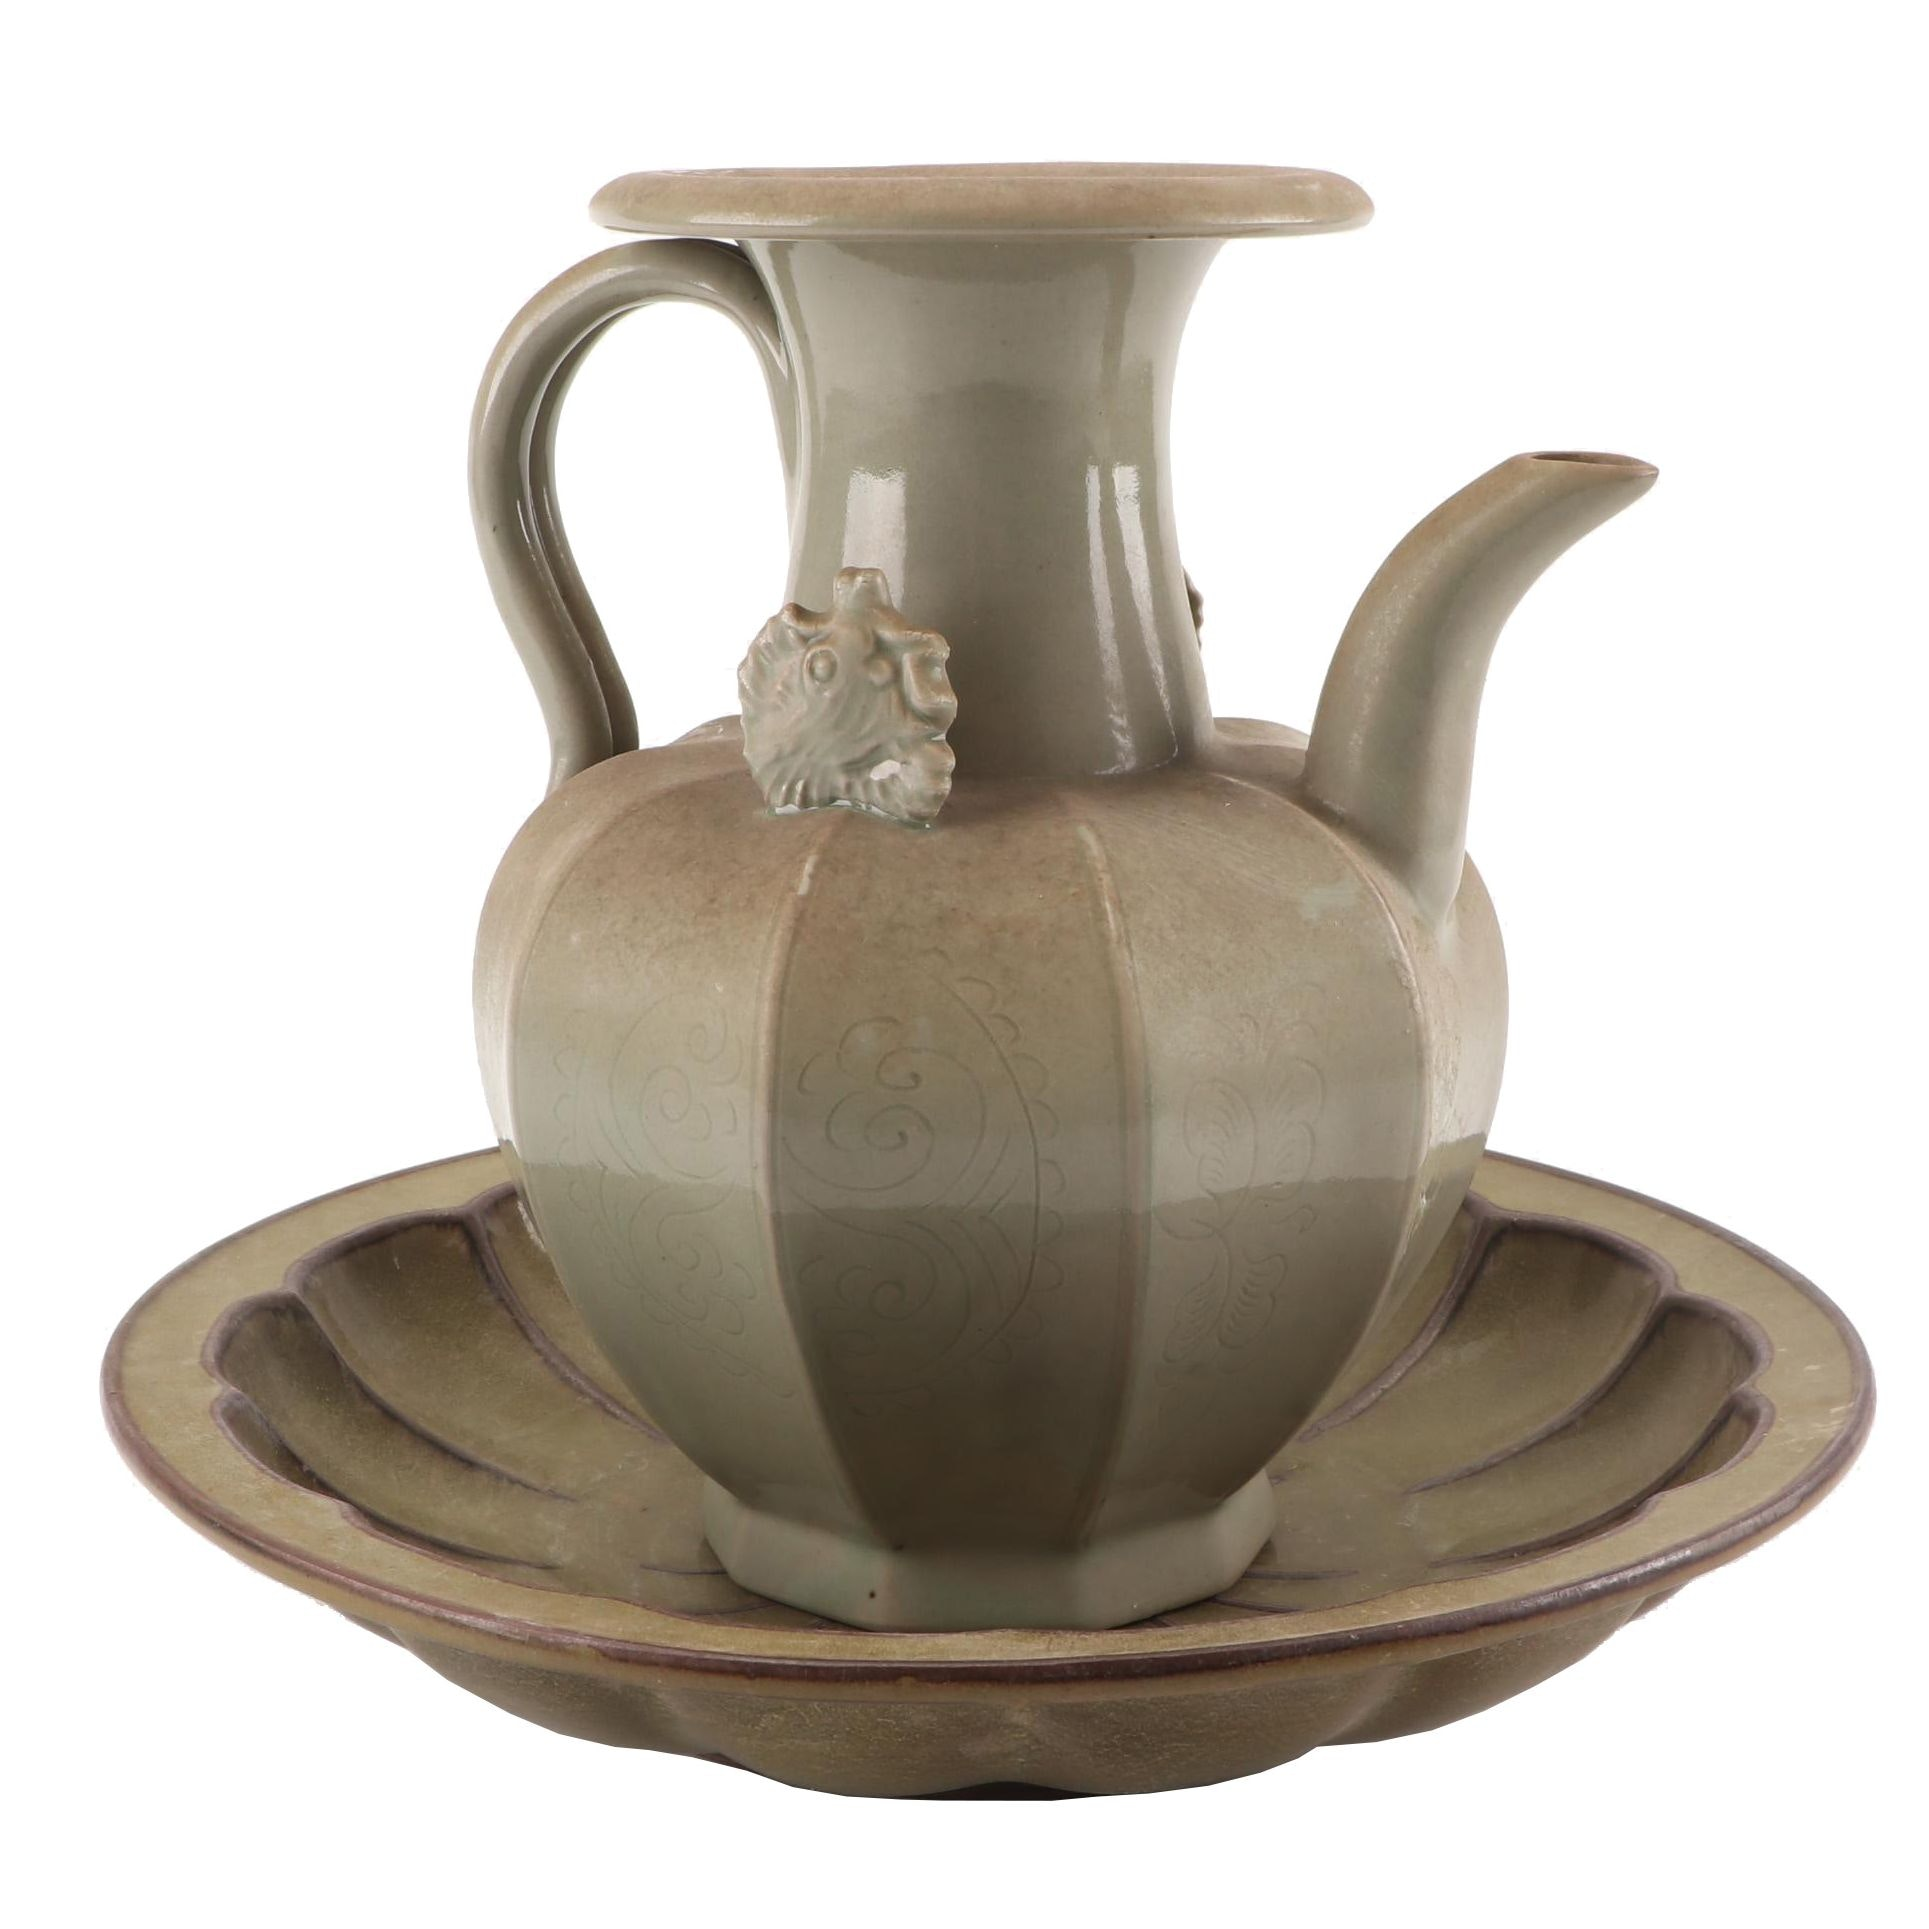 Chinese Decorative Celadon Teapot with Embossed Bowl